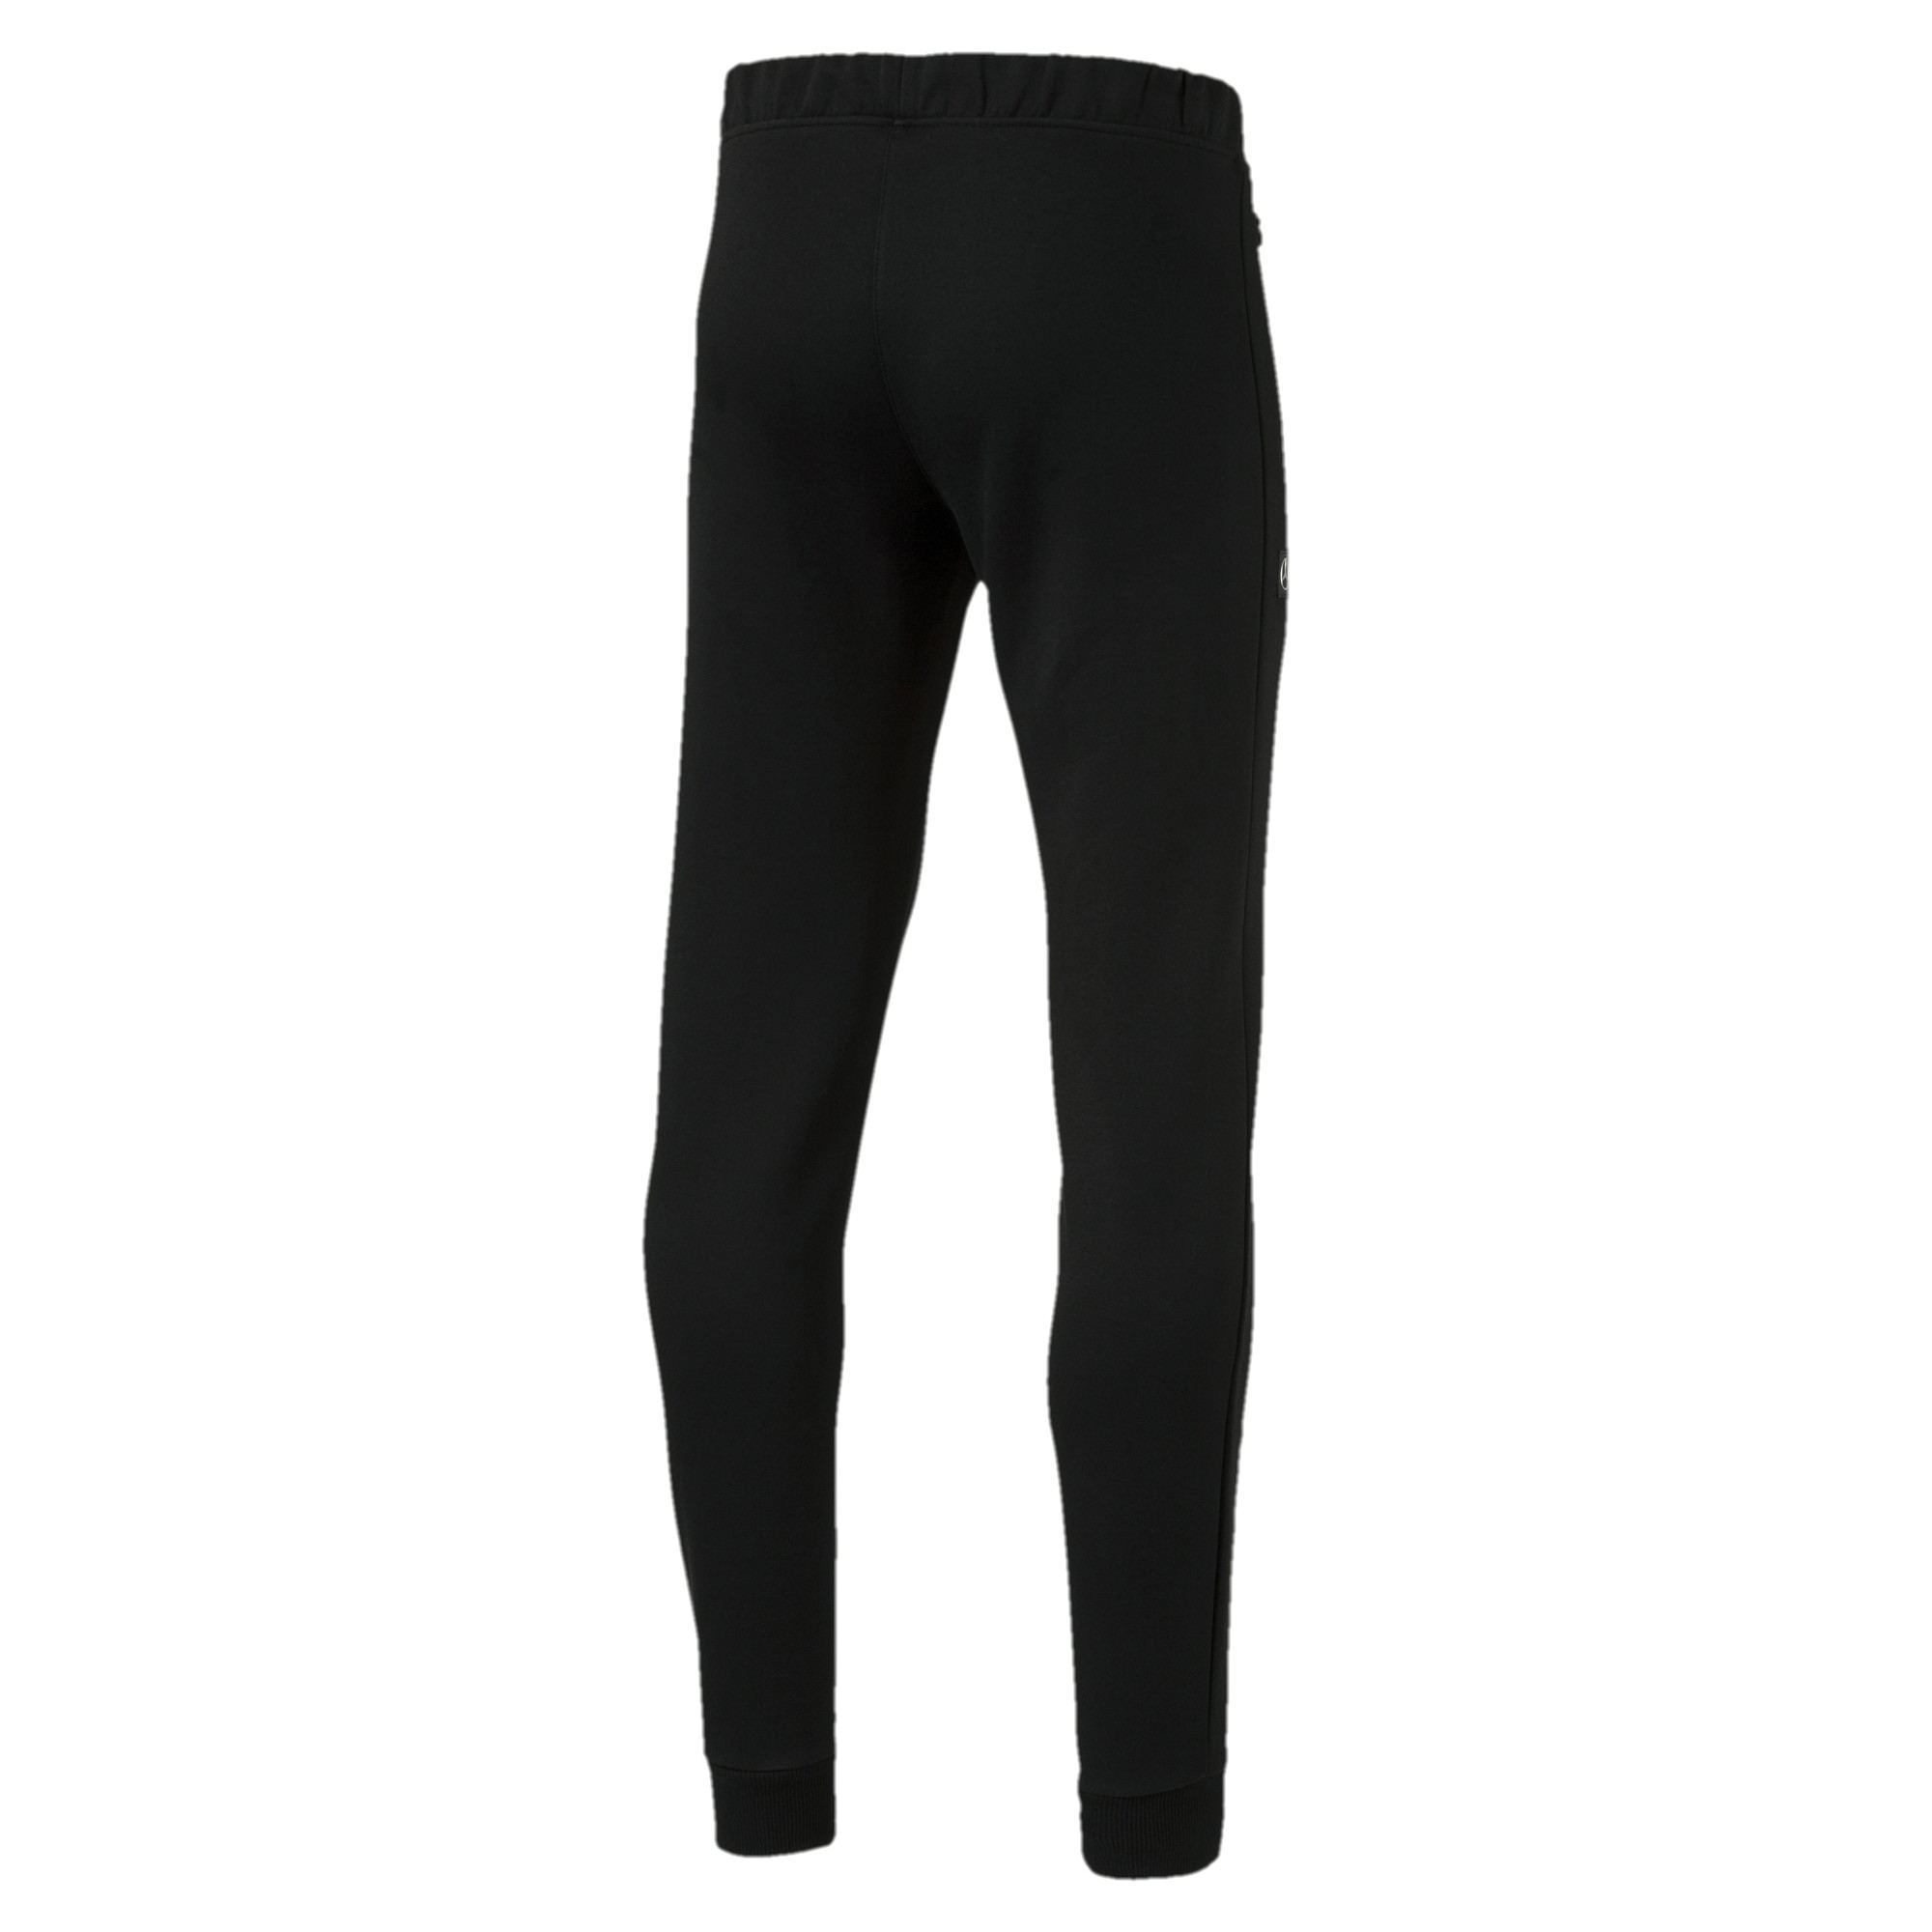 Брюки Puma MAPM Sweat Pants. Фото N2